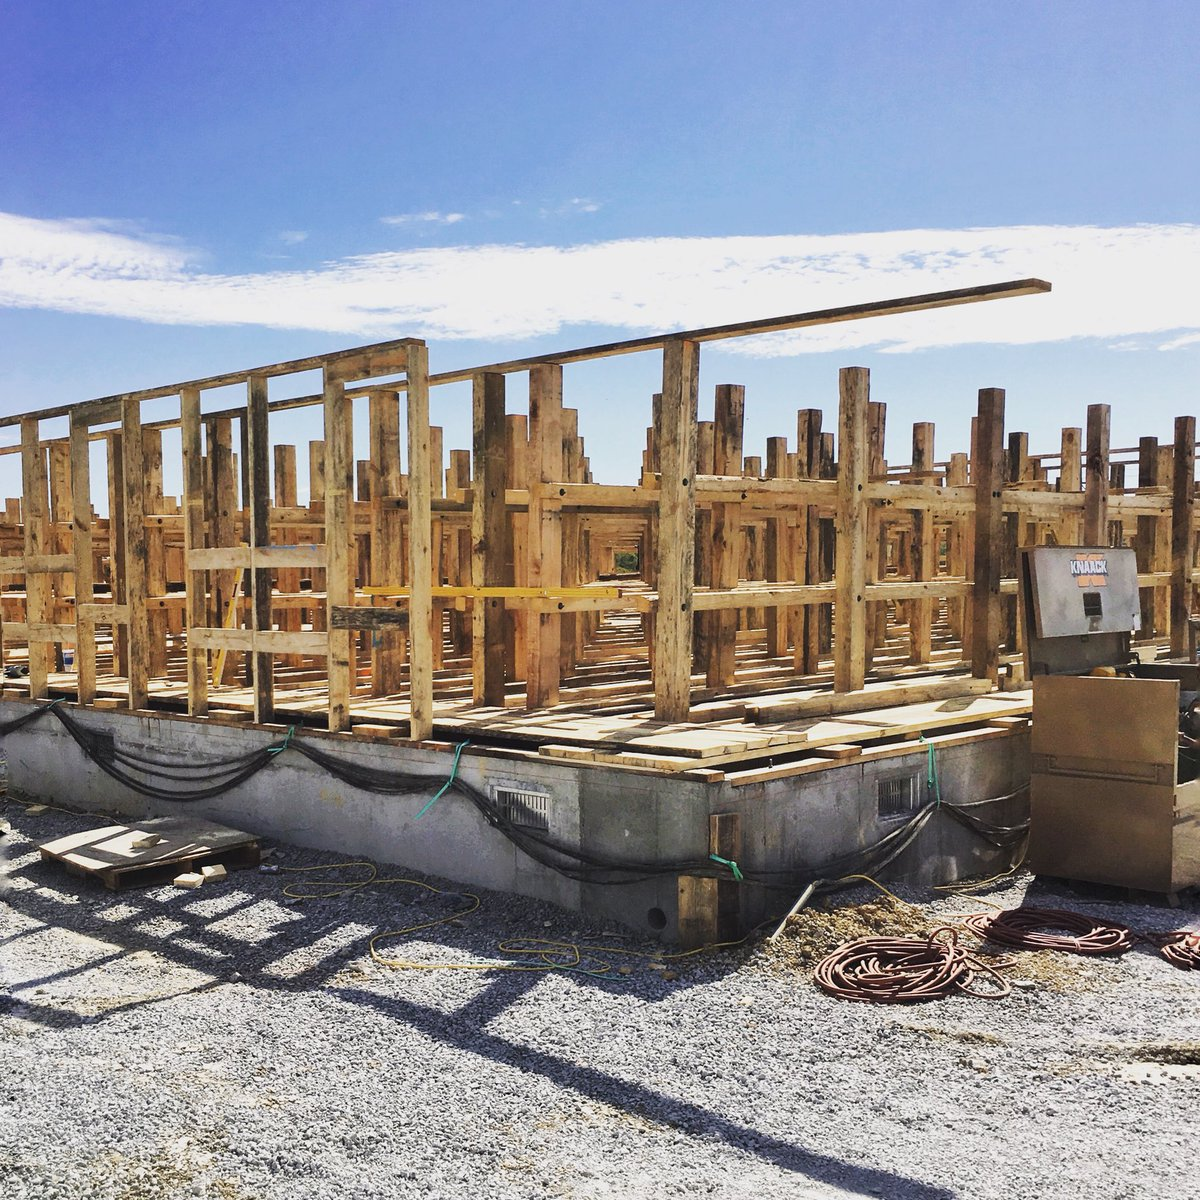 Pretty sure this was just a pile of wood a few days ago... #progress #fastwork #rickhouse #contruction #expansion #lightattheendofthetunnel<br>http://pic.twitter.com/XaI9FcMRPY